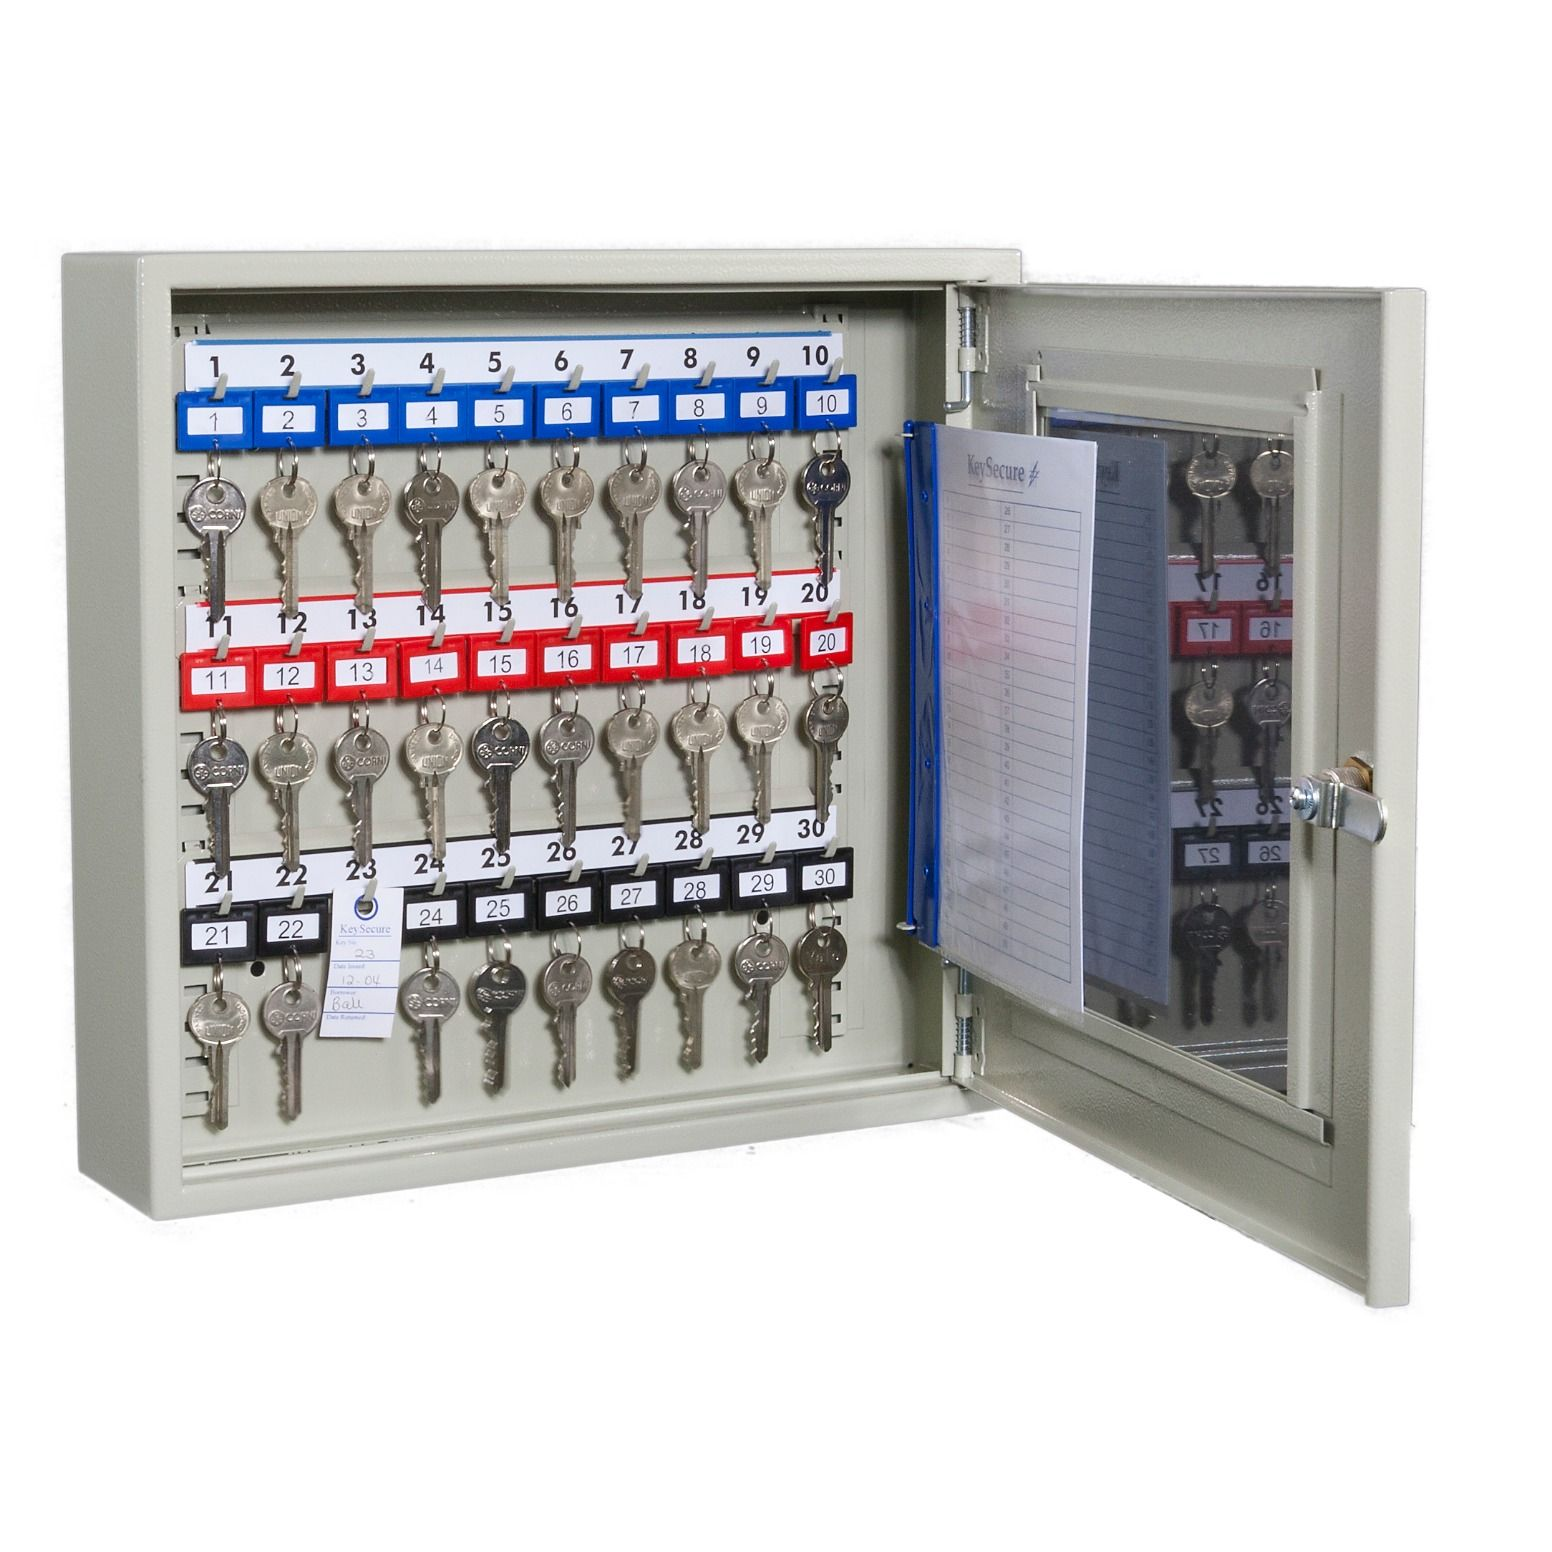 637393098127569646_clear_fronted_perspex_key_cabinets_with_electronic_cam_lock_30_hook_35_x_38_x_10.5cm_open.jpg